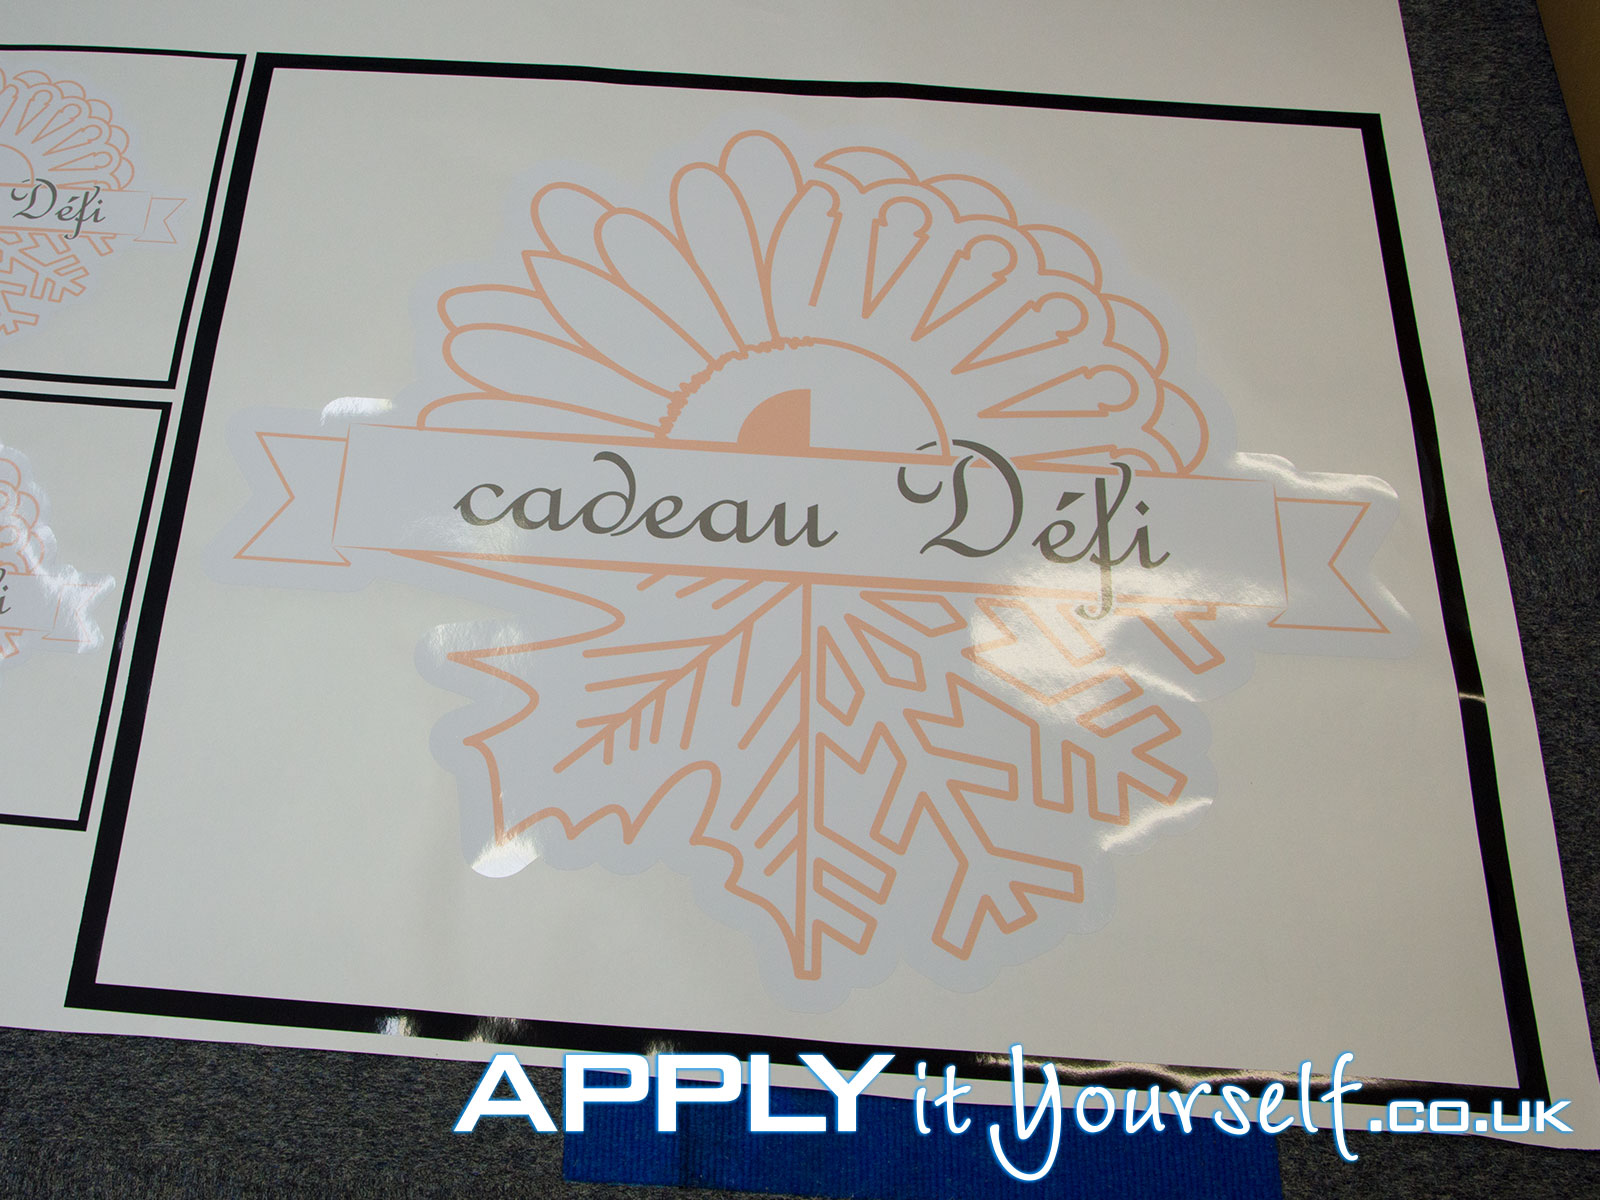 wall stickers, multiple sizes, cut-to-shape, logos